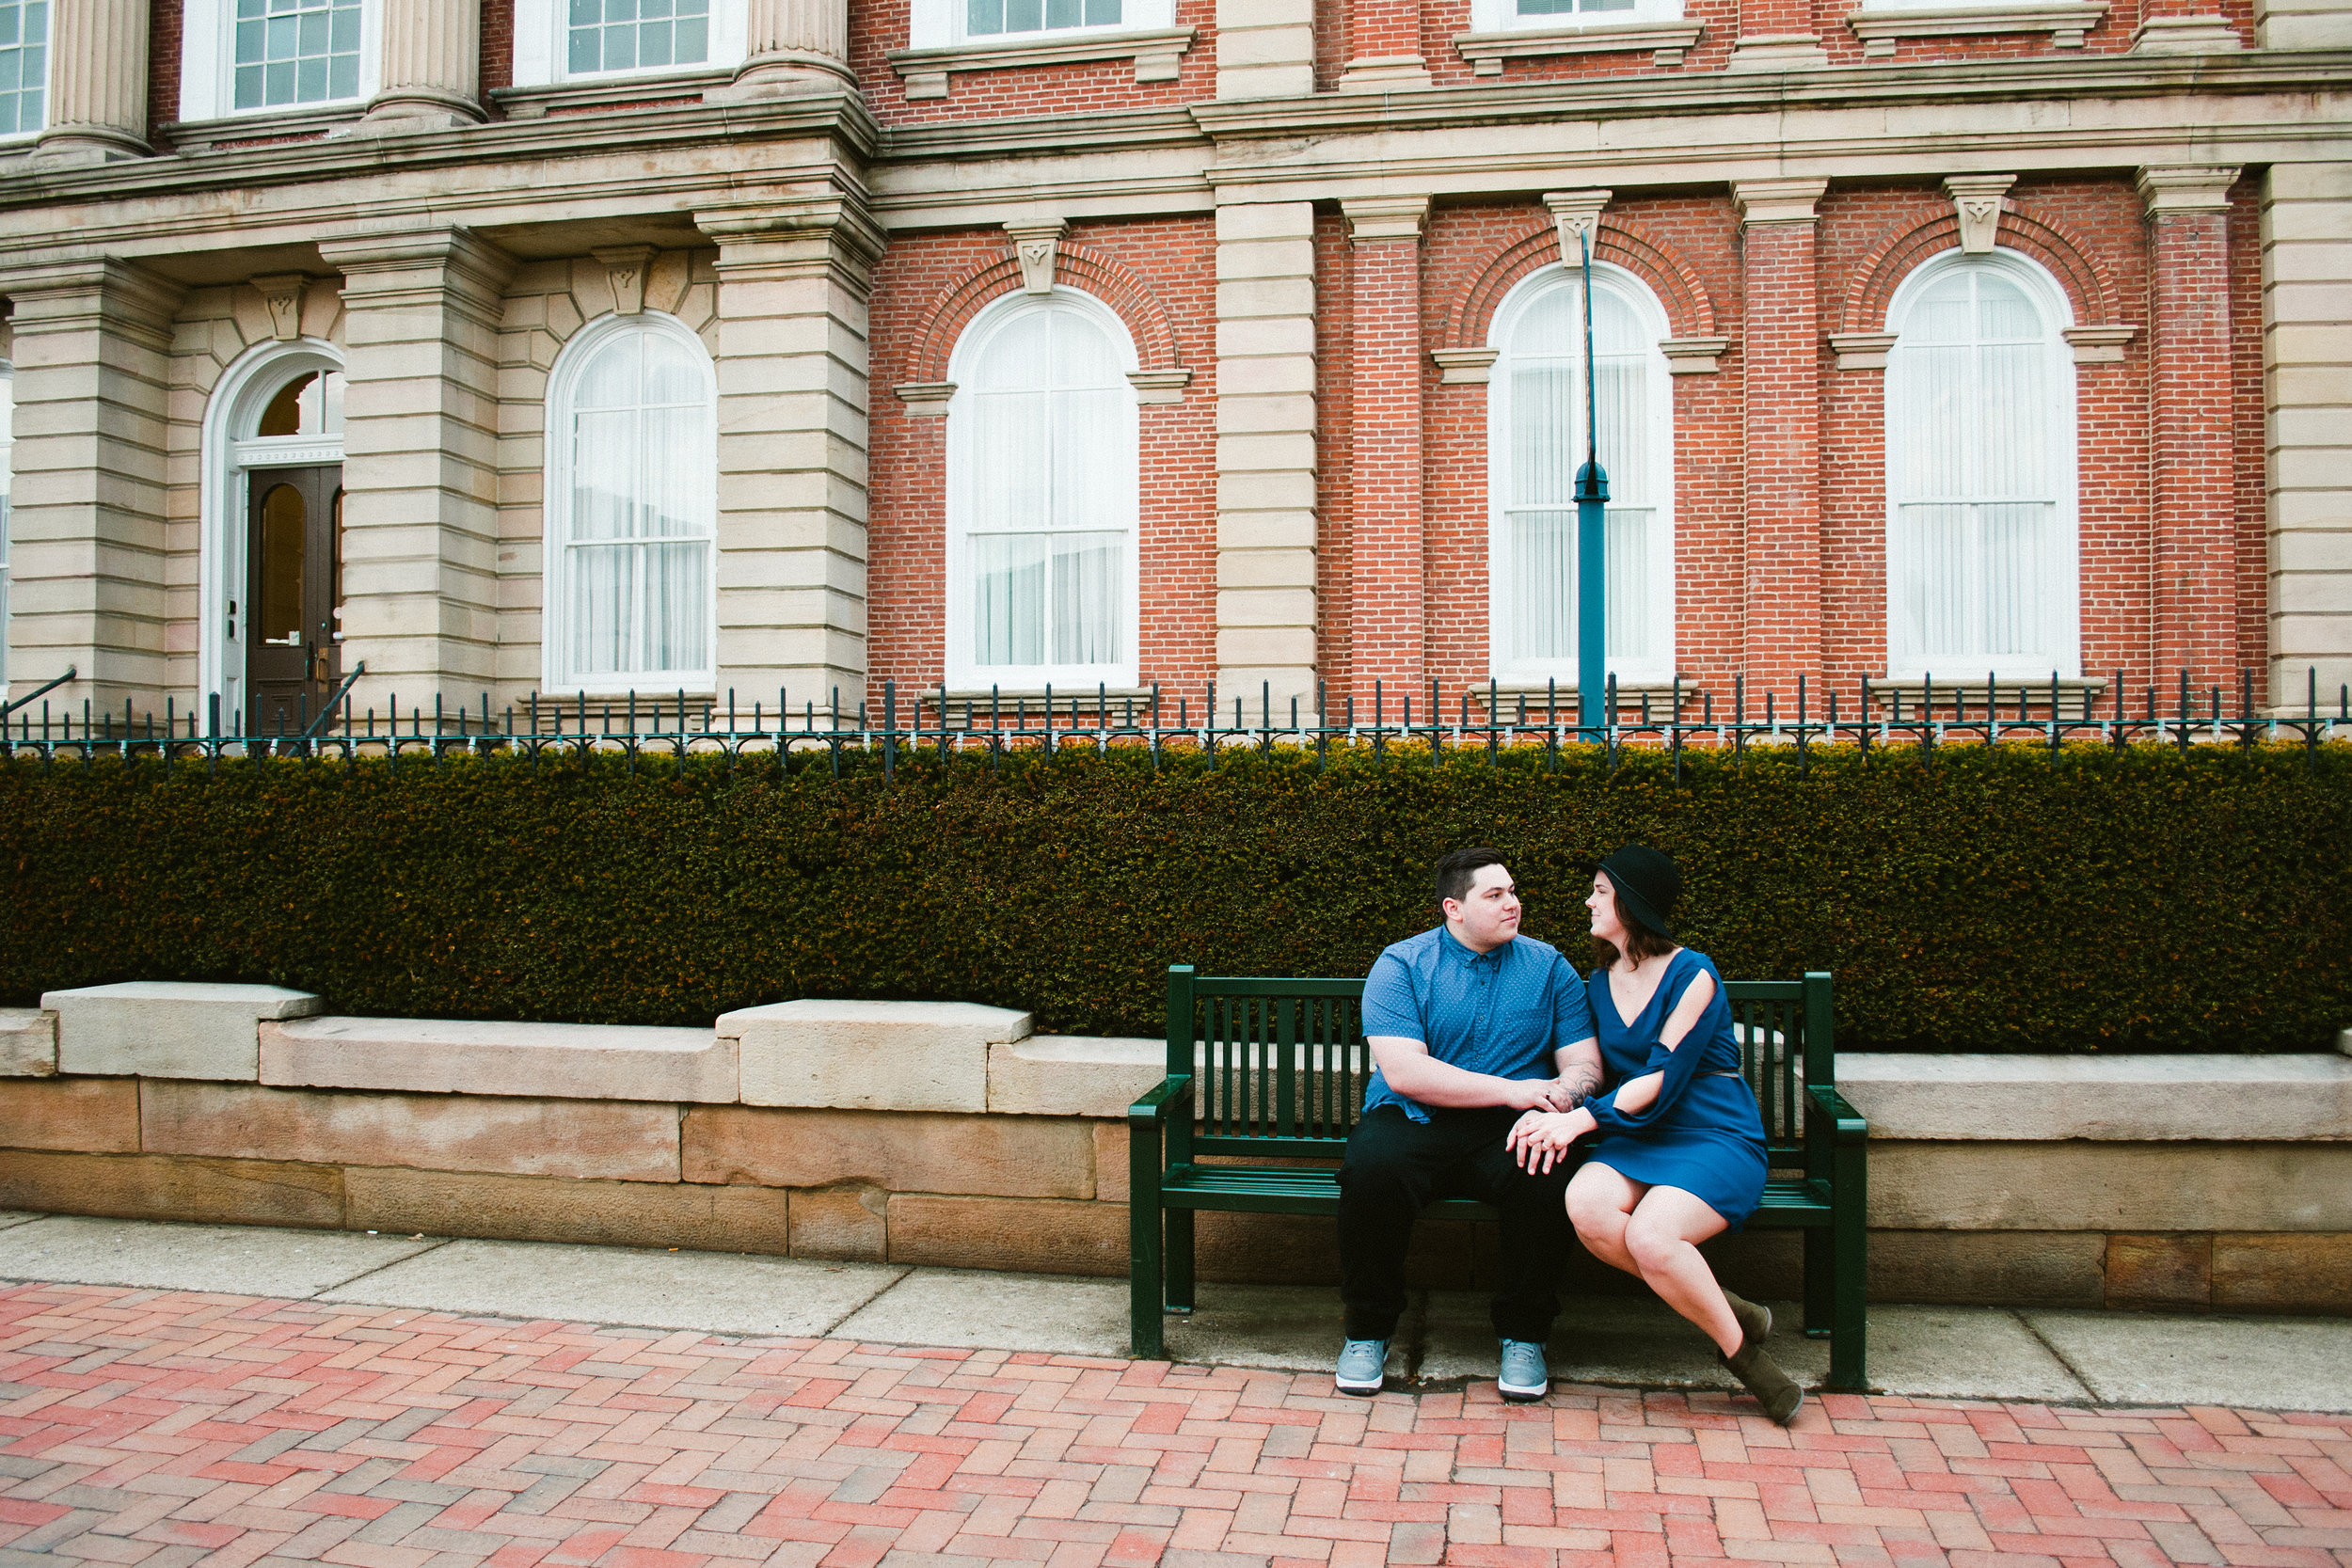 engagement photo in front of courthouse-2.jpg